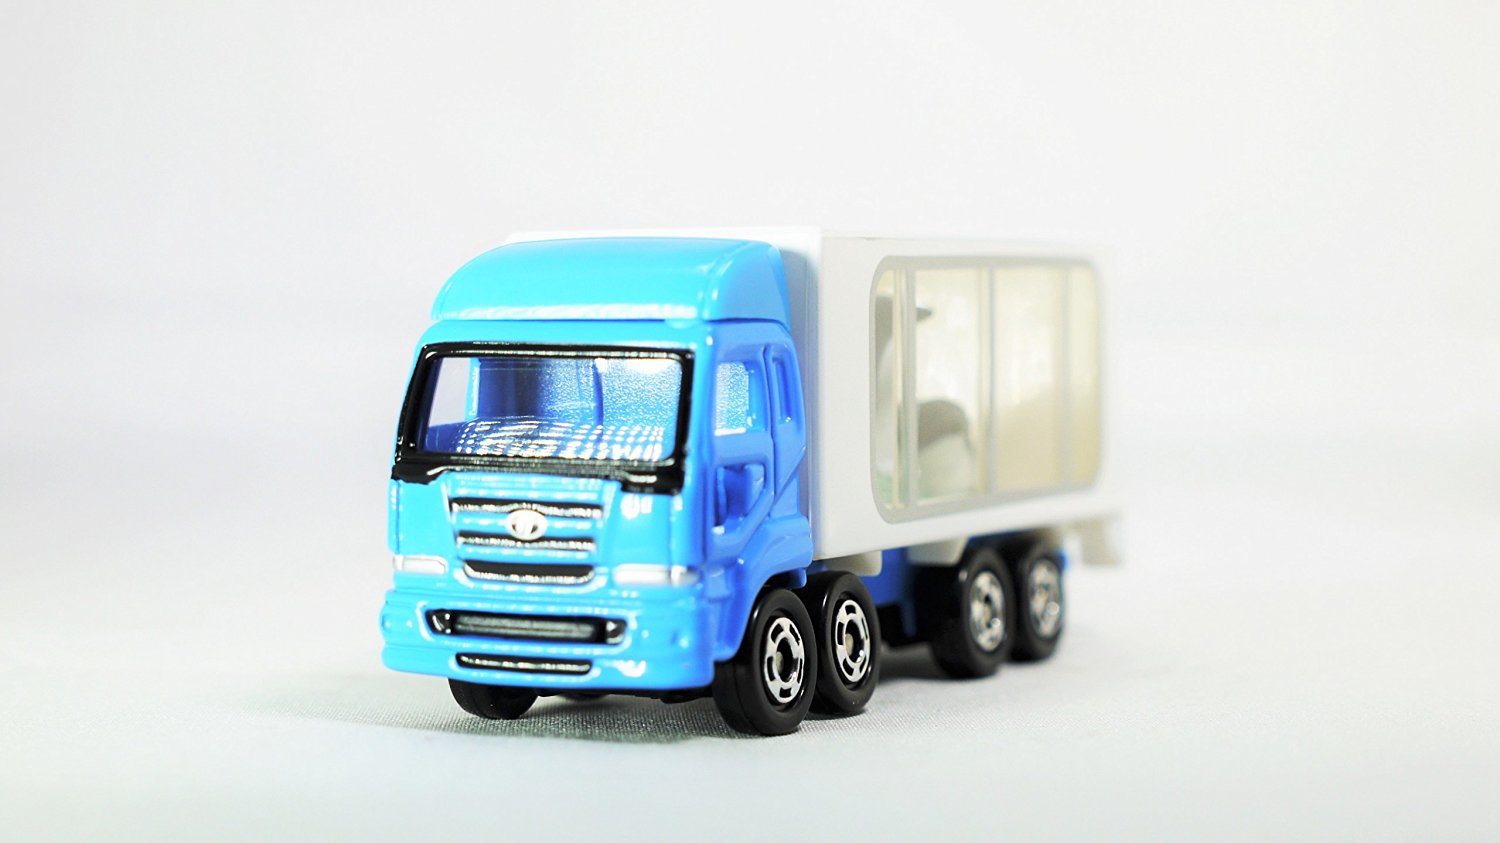 TAKARA TOMY TOMICA Commercial Vehicle Typus TRUCK ANIMAL CARRIER PENGUIN 47 Vehicle Diecast White & Blue Color